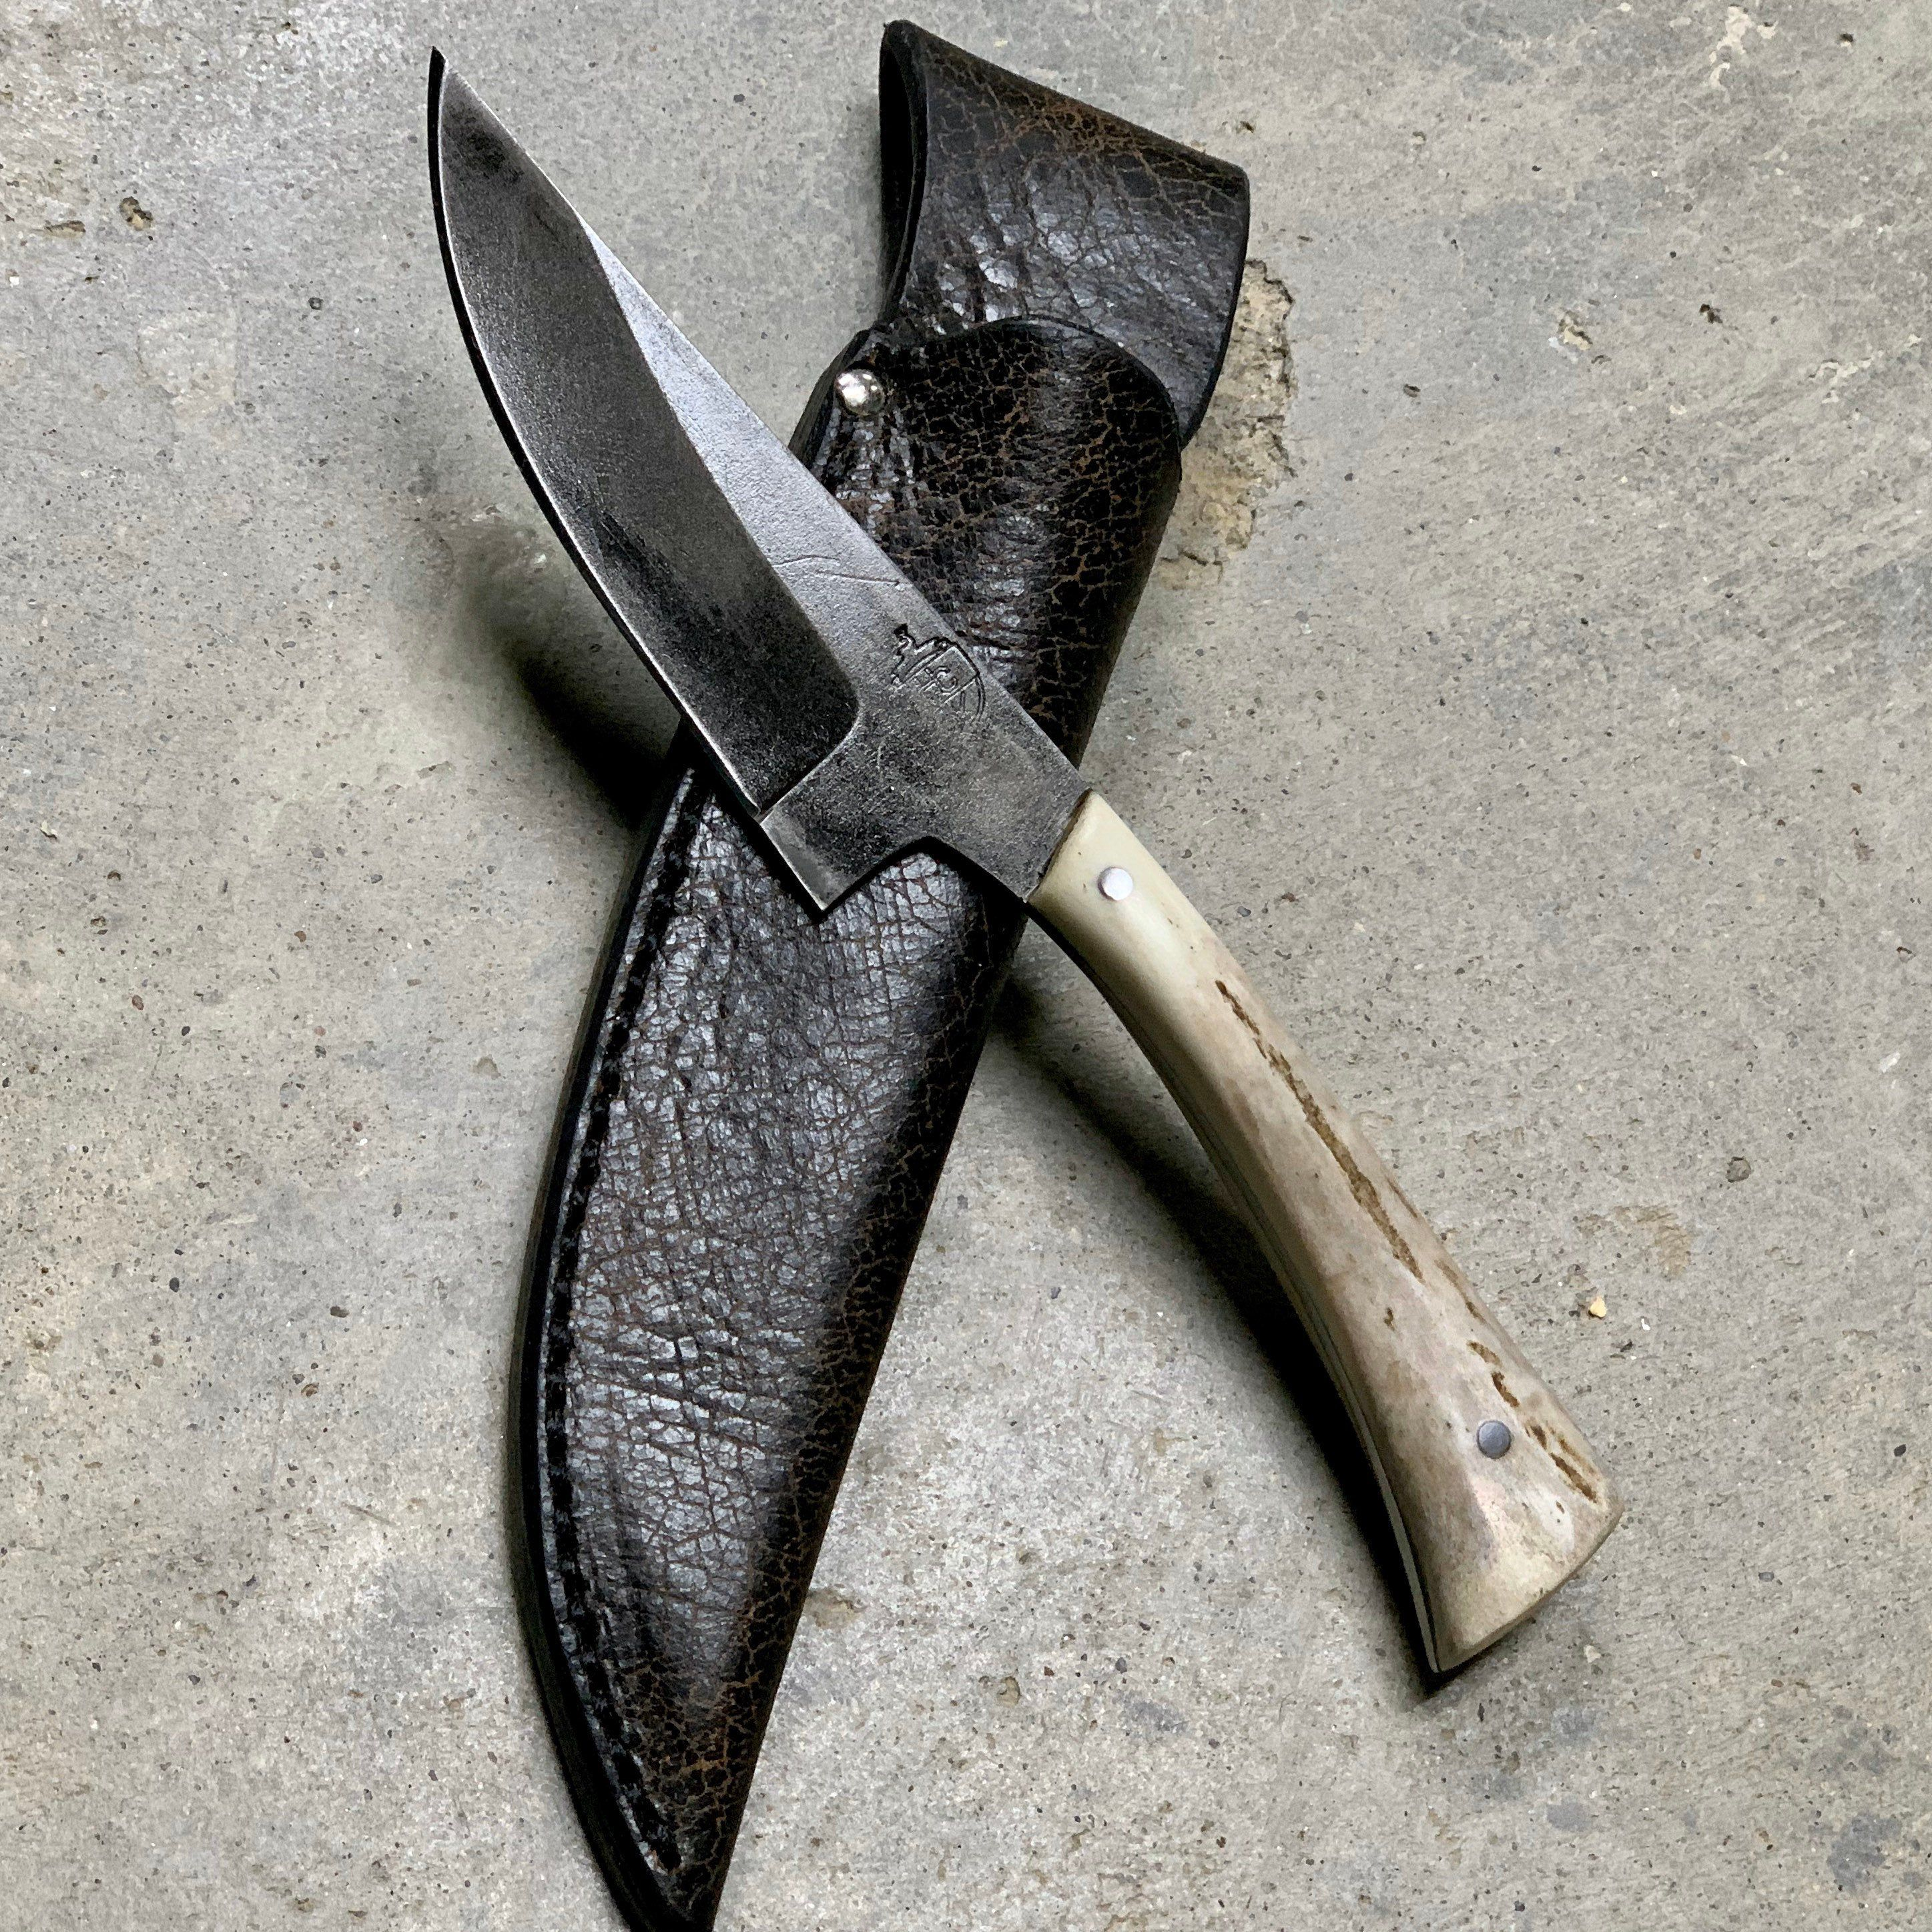 Full Tang Hunting Knife With 1095 High Carbon Steel Blade Whitetail Deer Antler Handle And Amish Made Custom Leather Sheath In 2020 High Carbon Steel Knife Leather Sheath